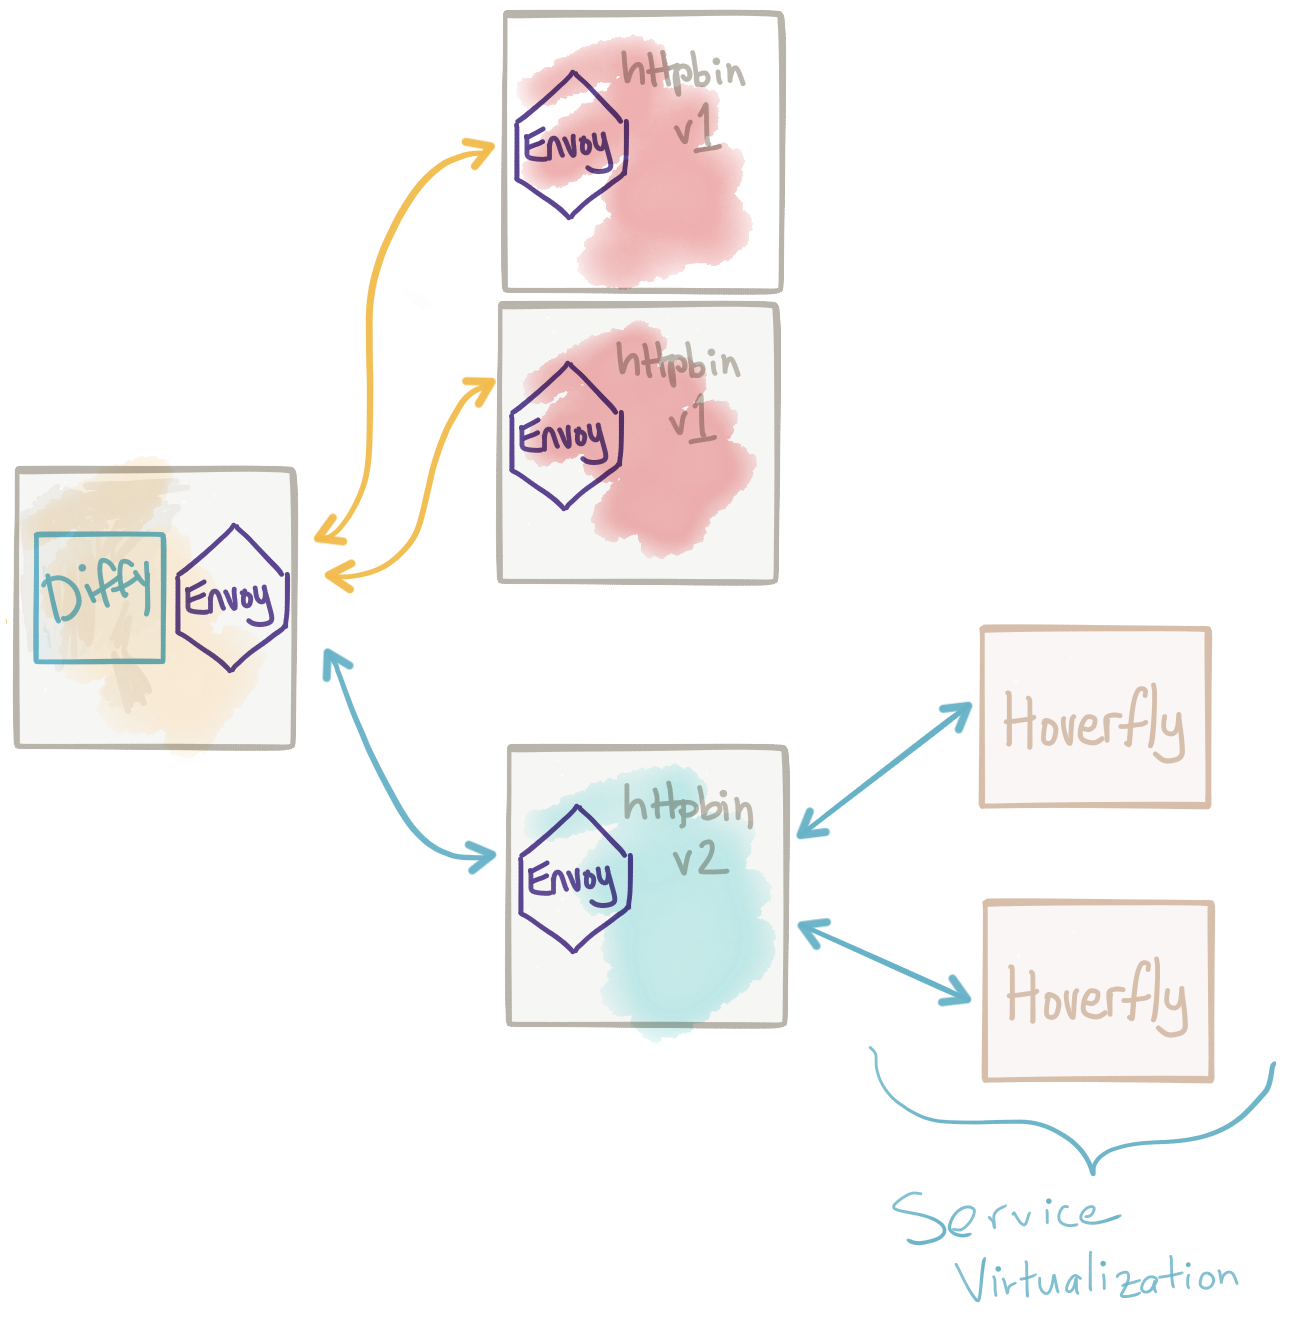 Advanced Traffic-shadowing Patterns for Microservices With